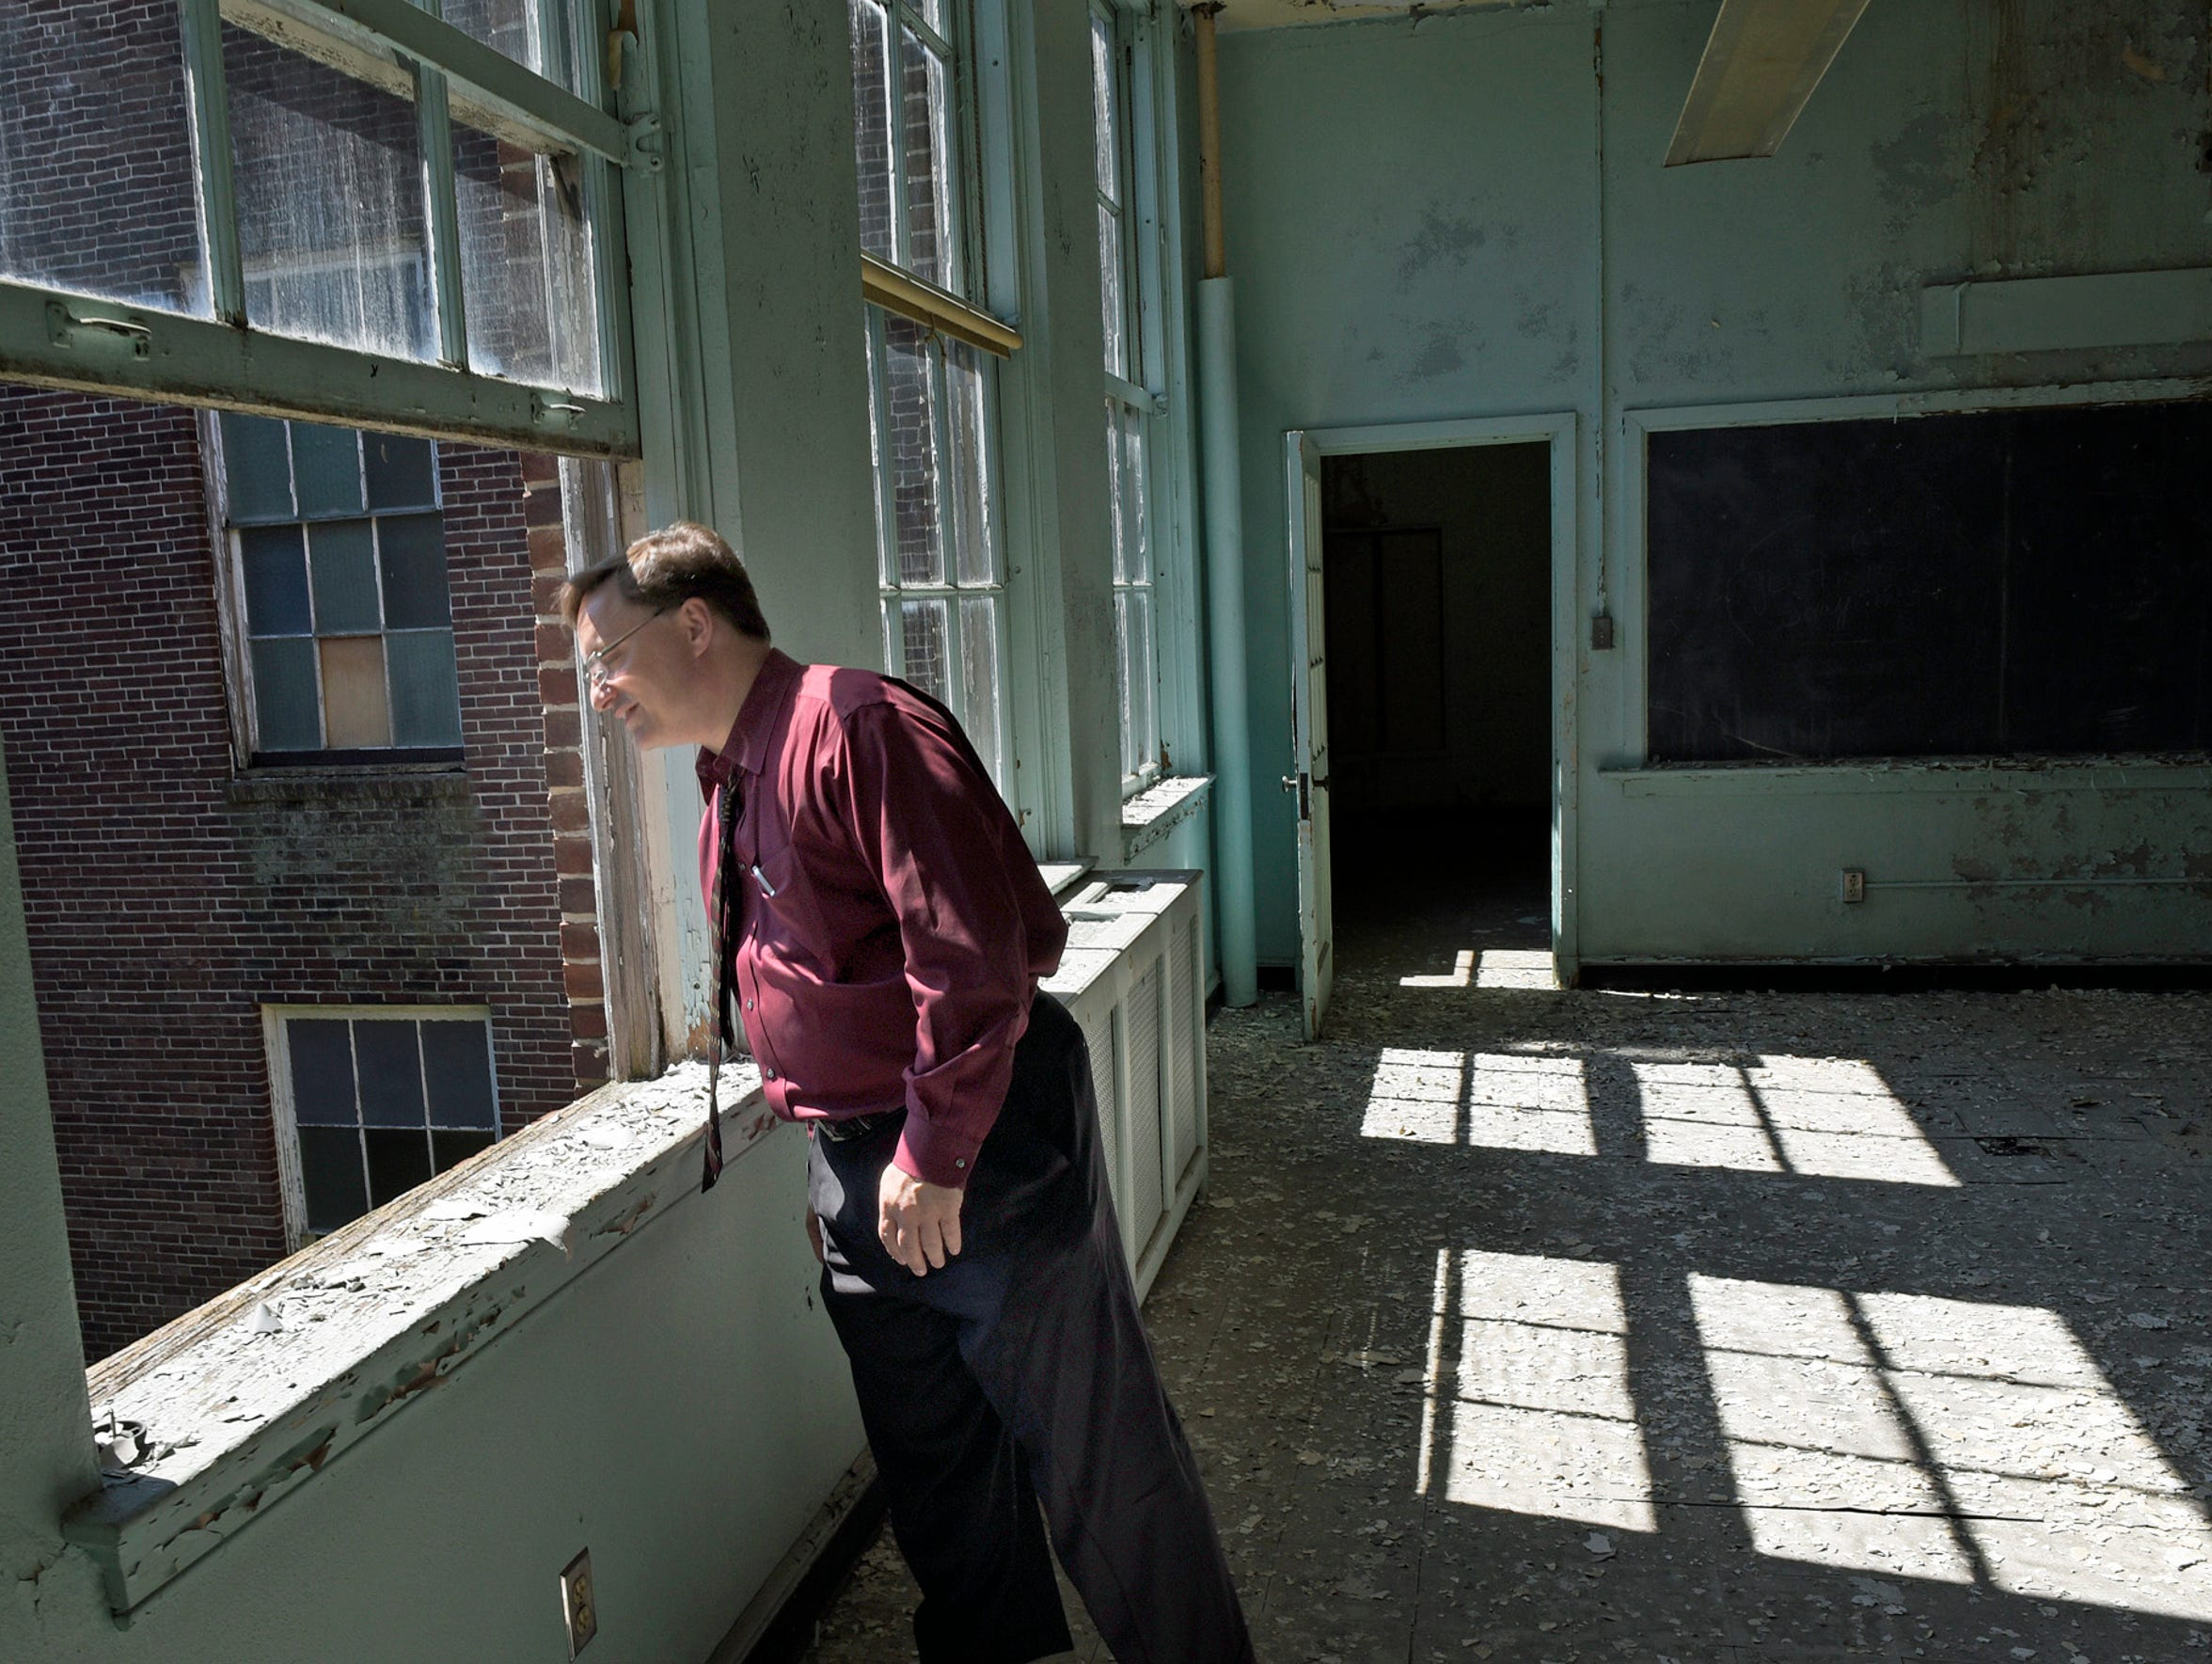 Vern McKissick is planning to turn old classrooms into